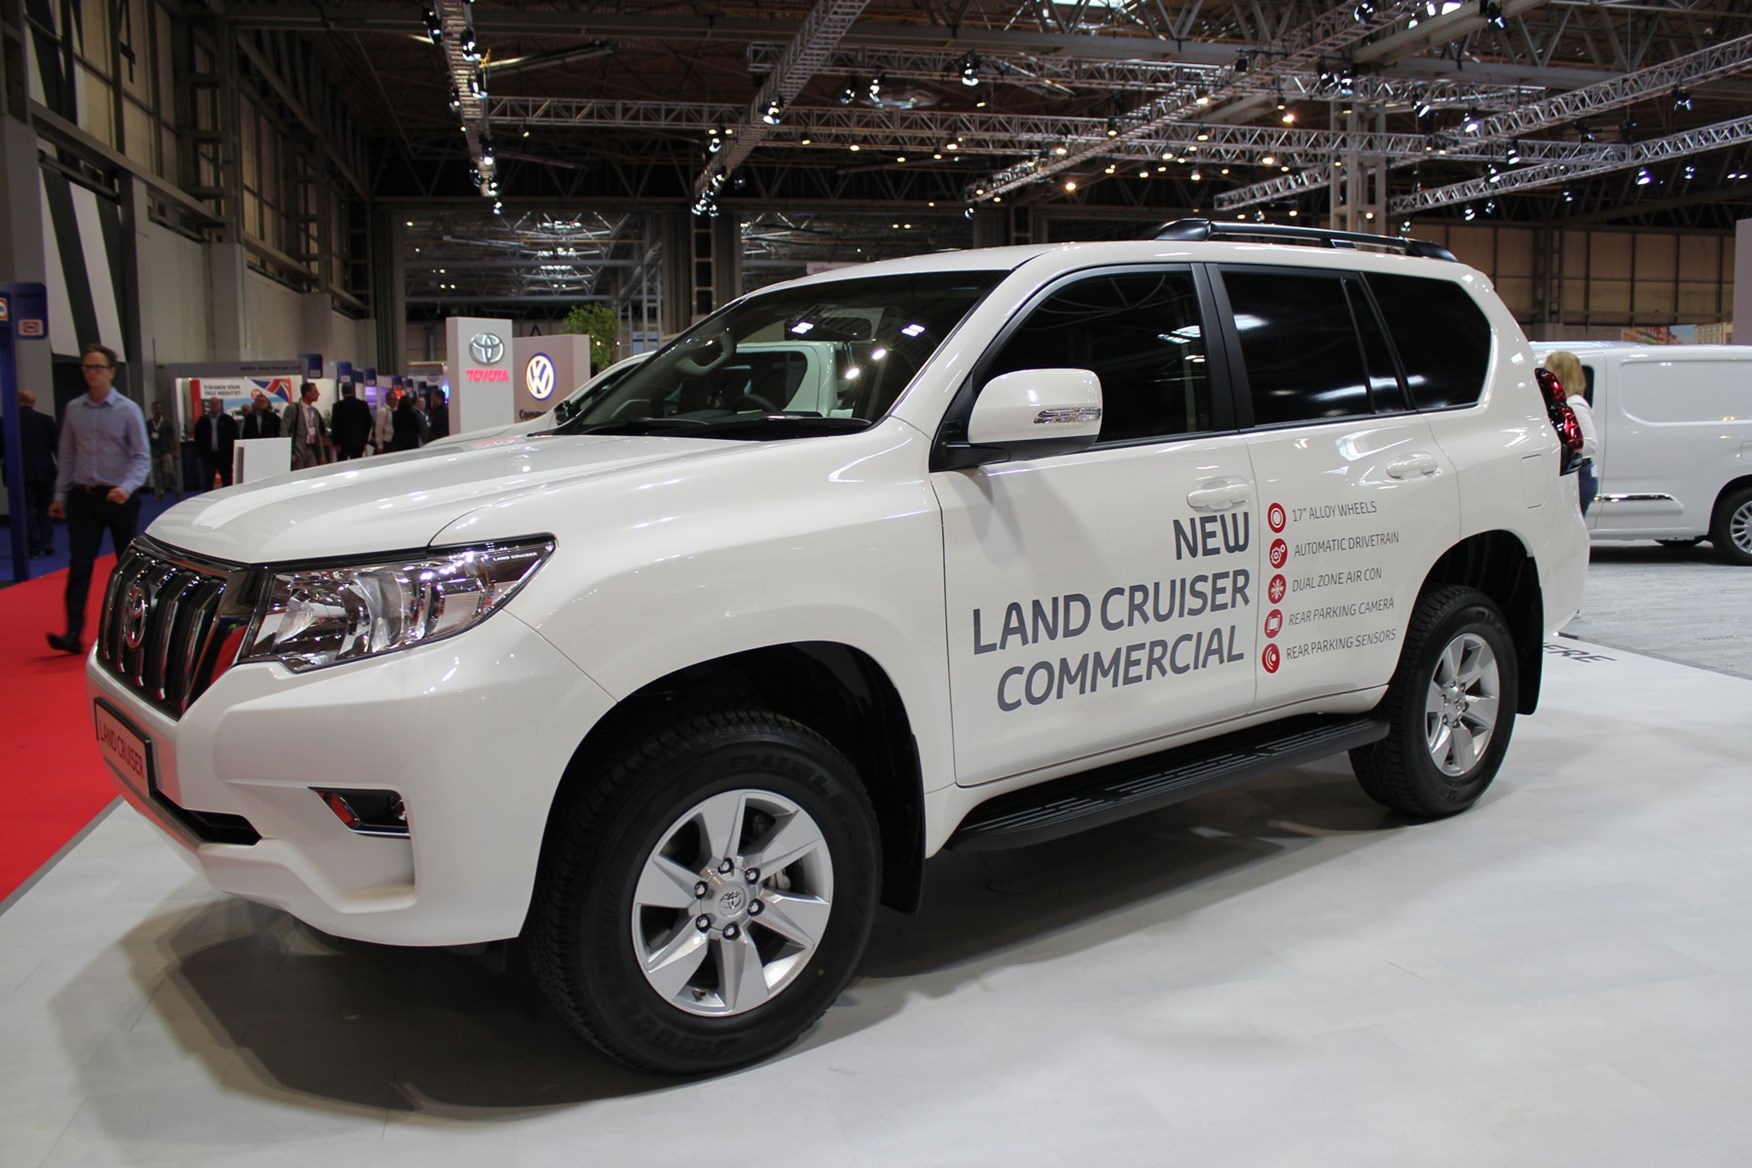 Toyota Land Cruiser Active Commercial launched at the CV Show 2019